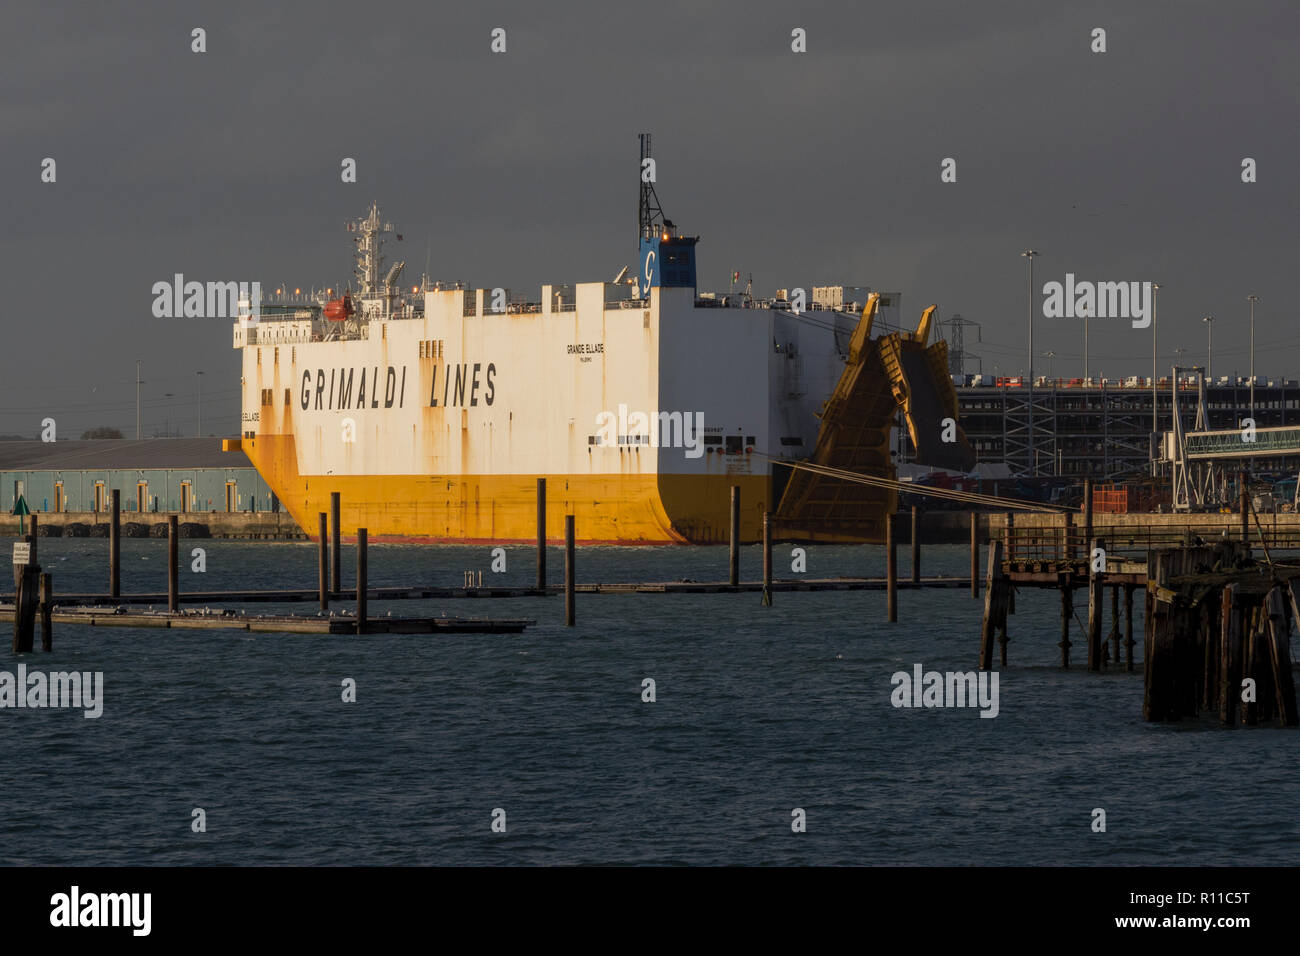 a grimaldi lines car carrier ship or vehicle transporter in dock at the port of southampton, hampshire, uk. - Stock Image